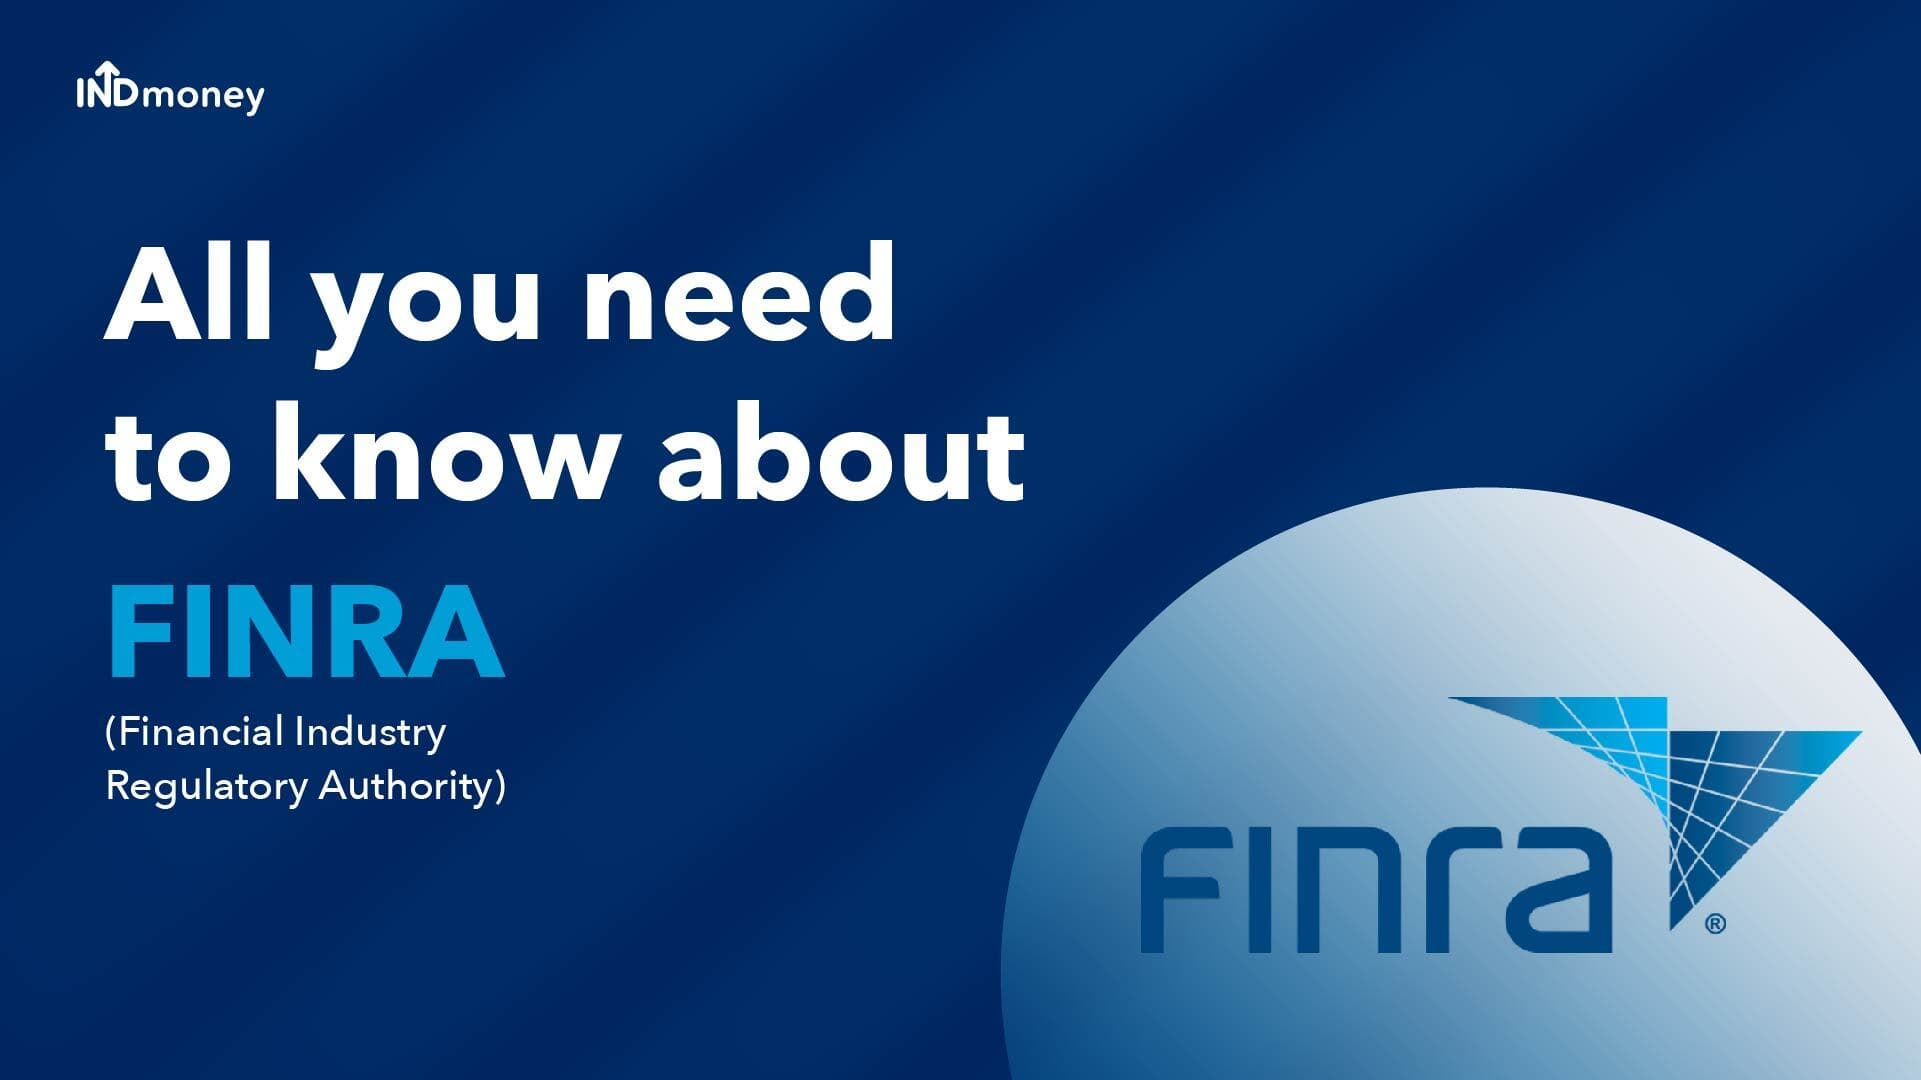 FINRA: FINRA Meaning, Functions Explained in Detail for US Stock Investors